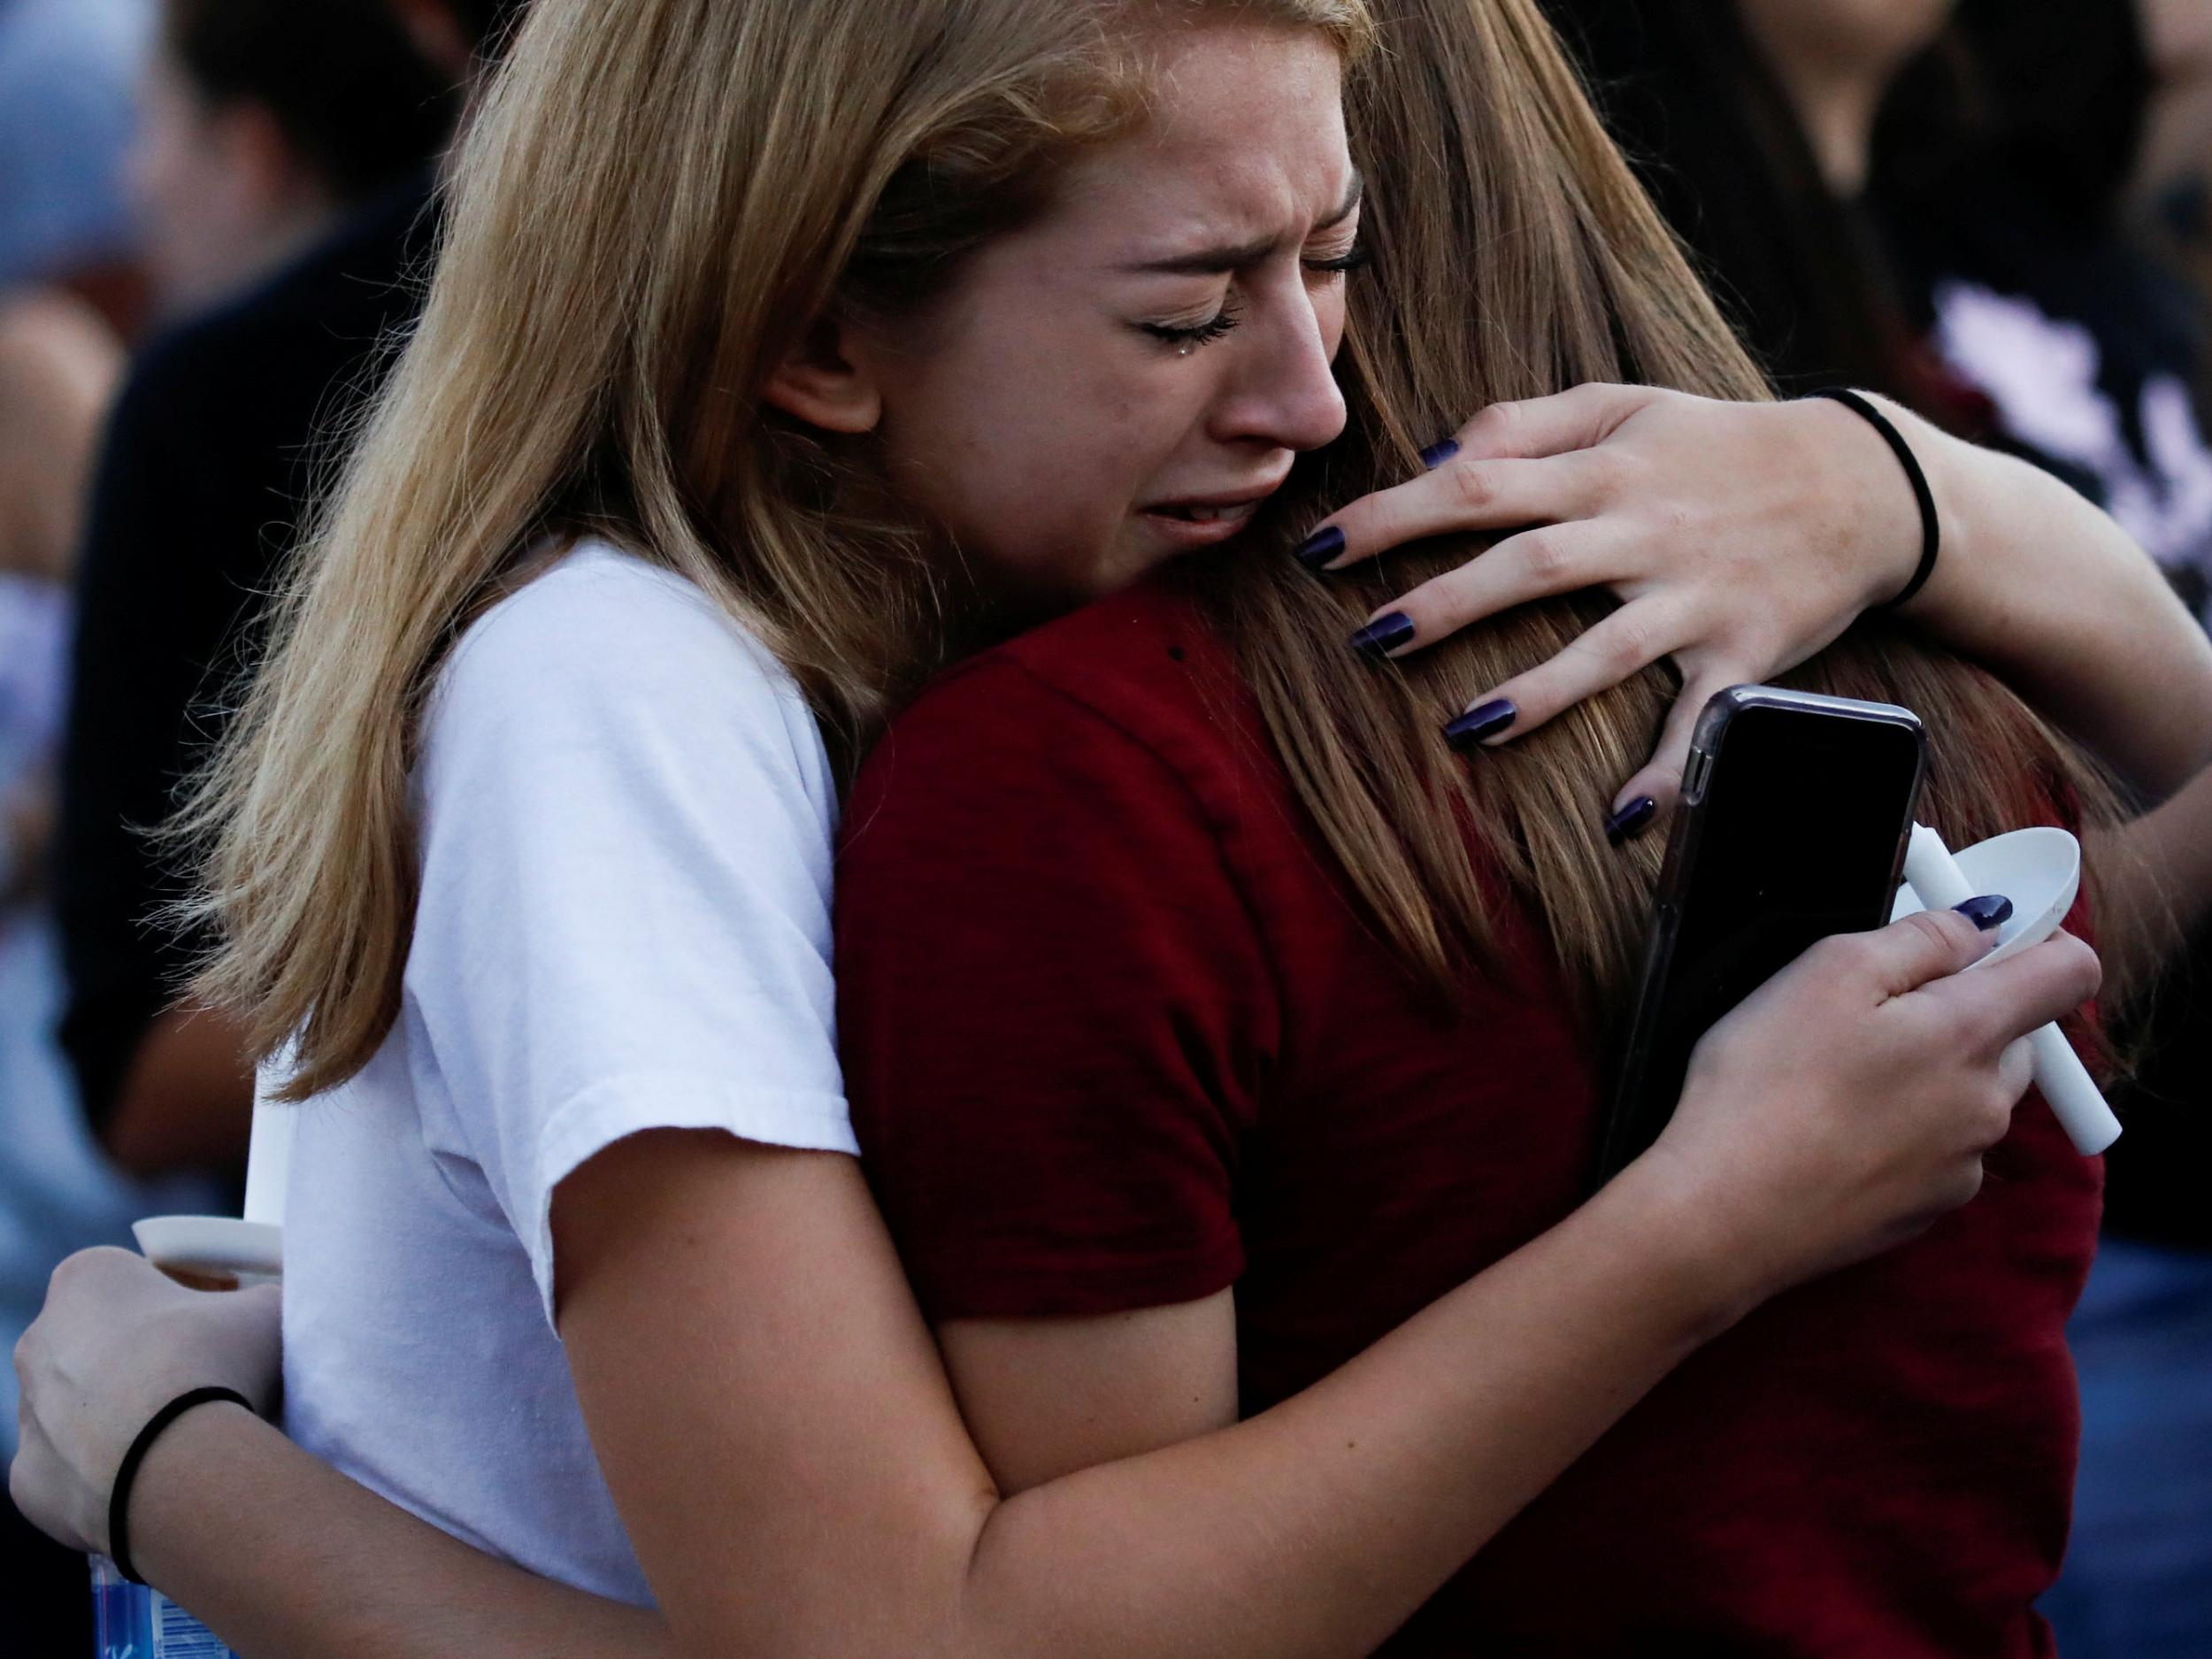 Florida shooting: Why there is eventually likely to be less, not more gun control in the US state